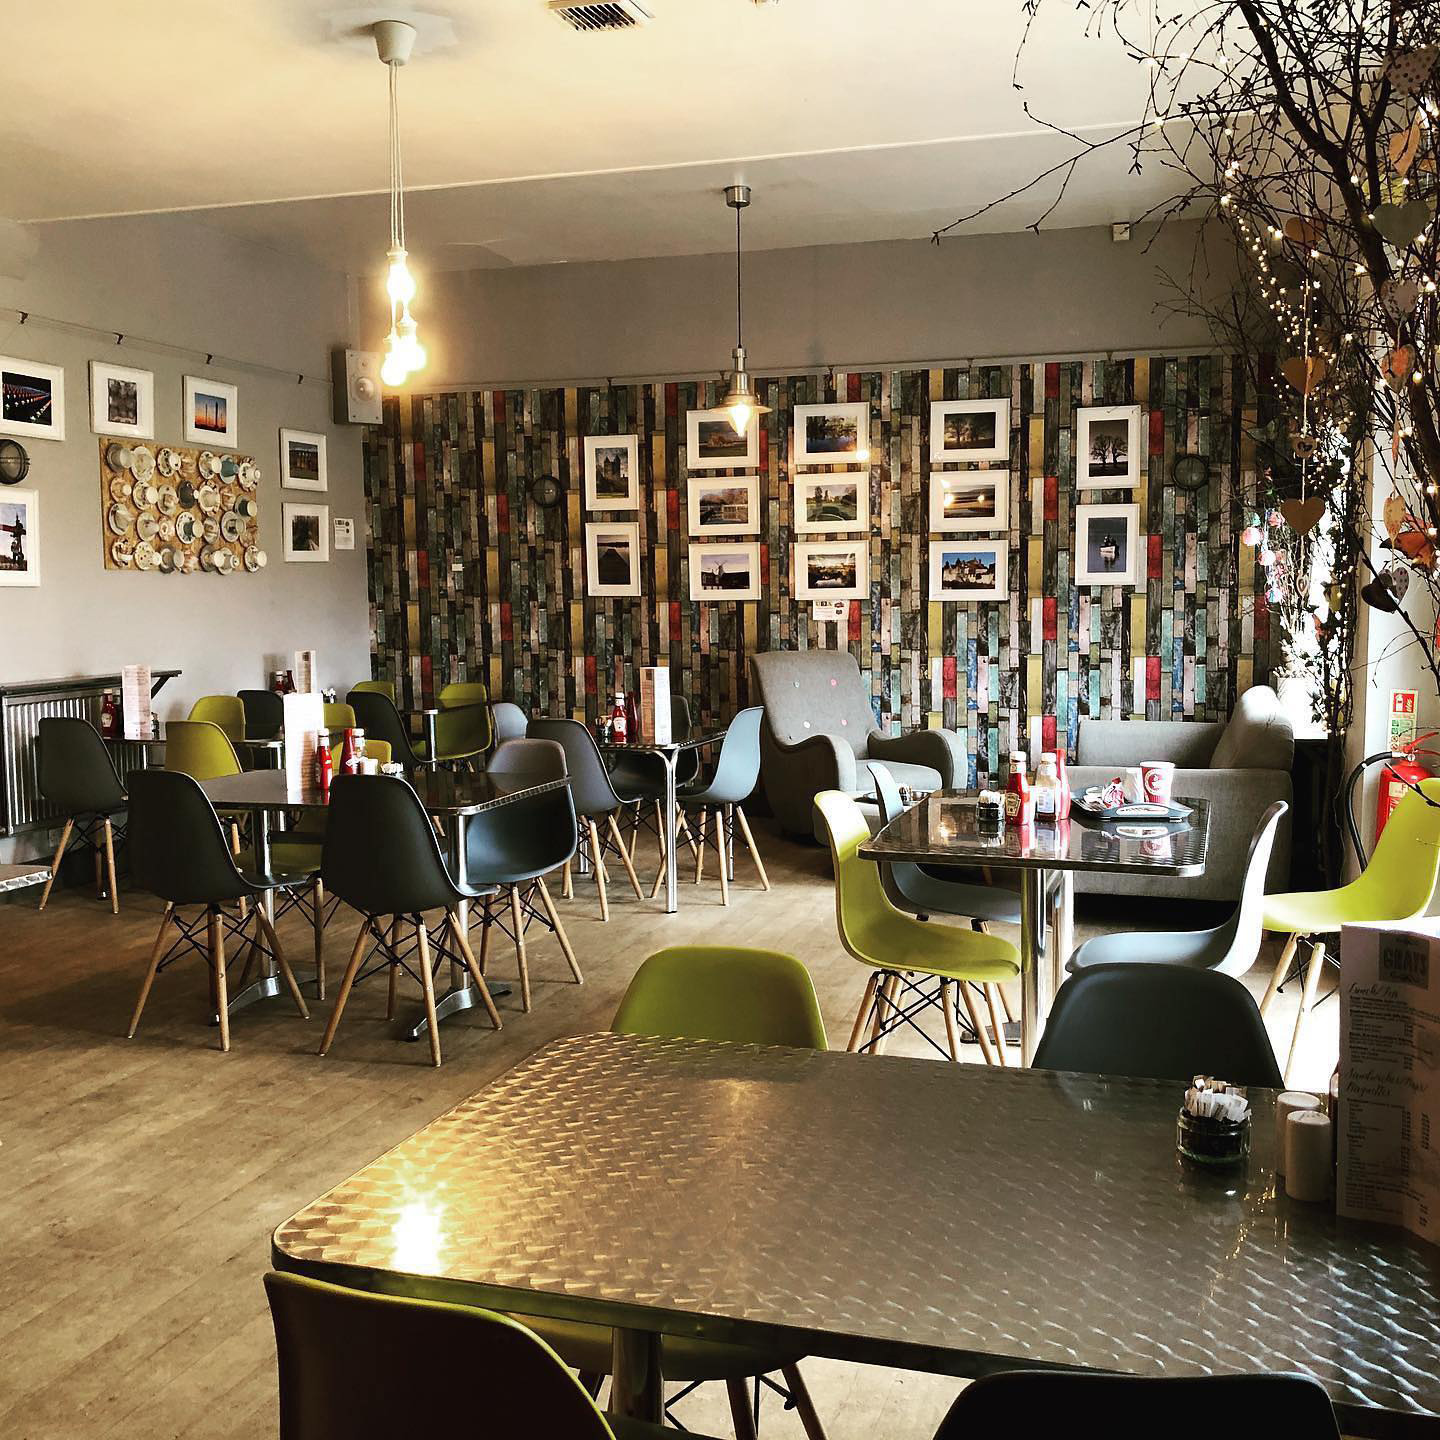 Gray's Licensed Cafe in Brenchley, rural Tunbridge Wells village